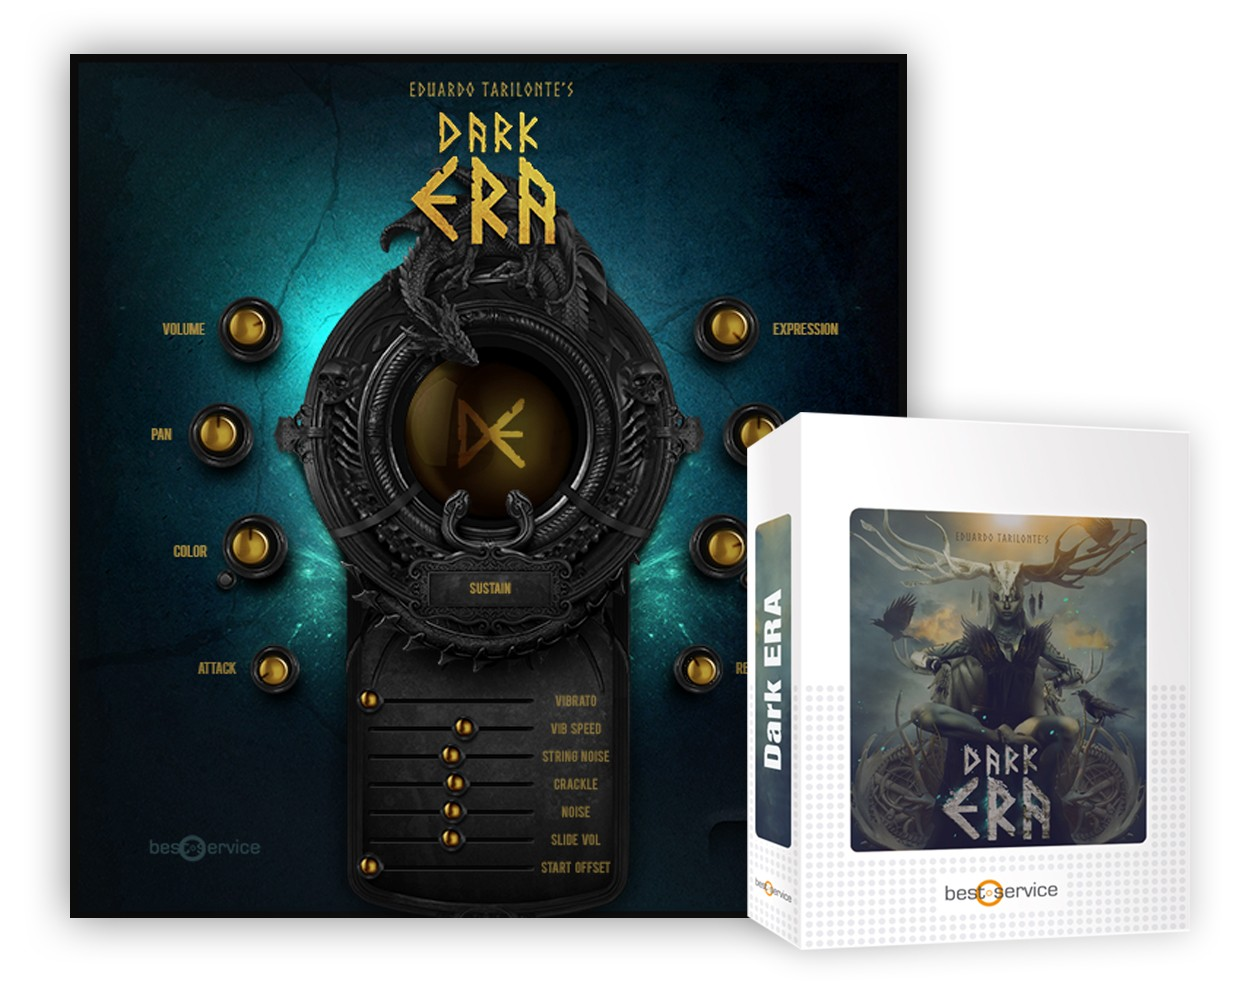 Dark ERA Box and GUI Image